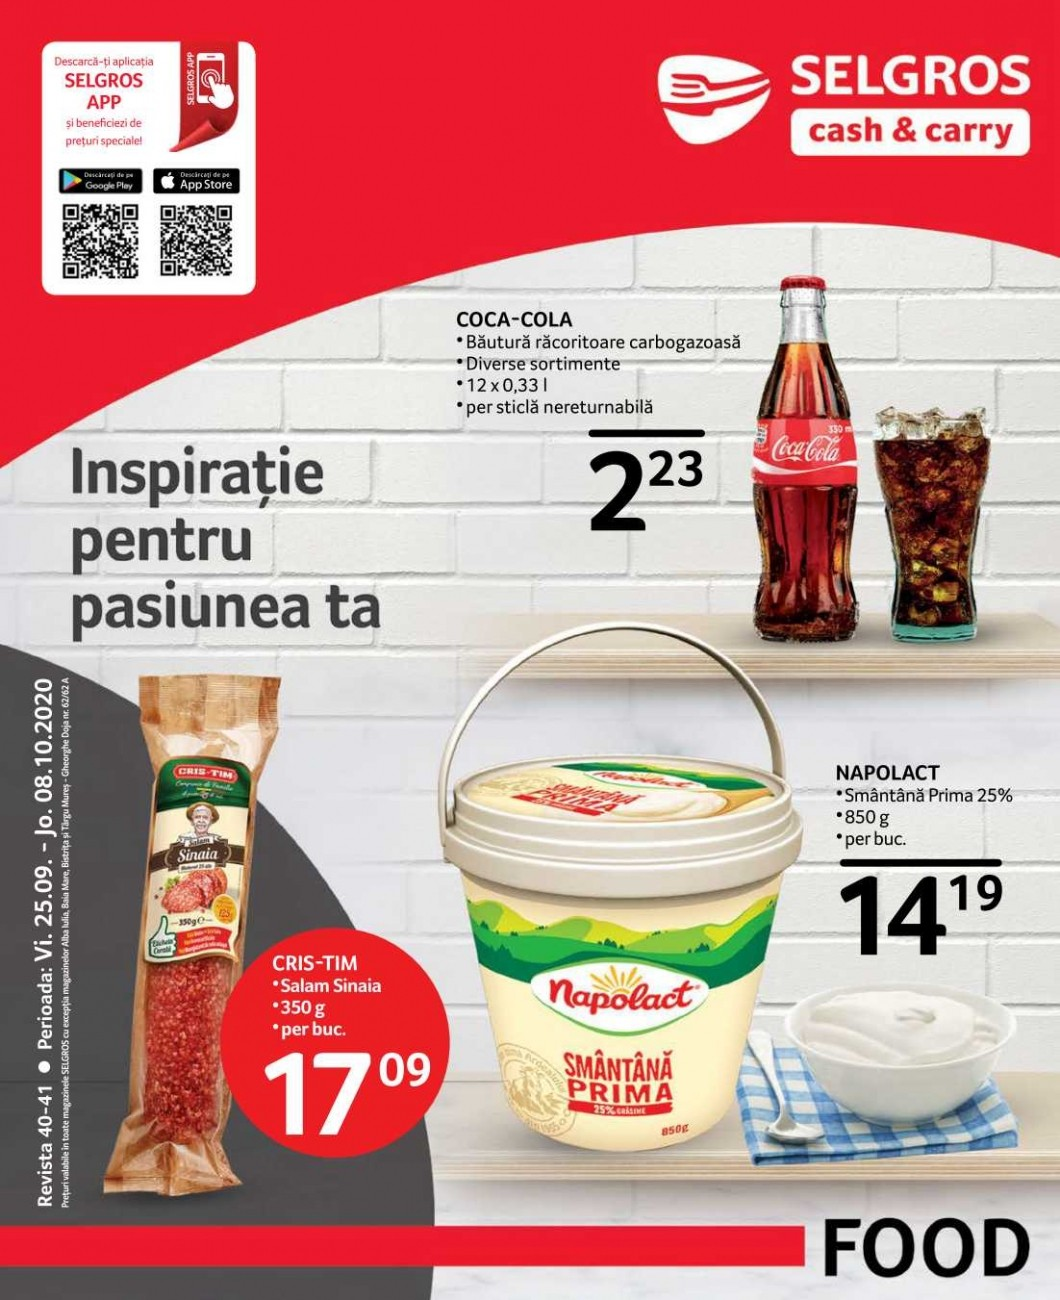 Catalog SELGROS - Oferte Alimentare! 25 Septembrie 2020 - 08 Octombrie 2020